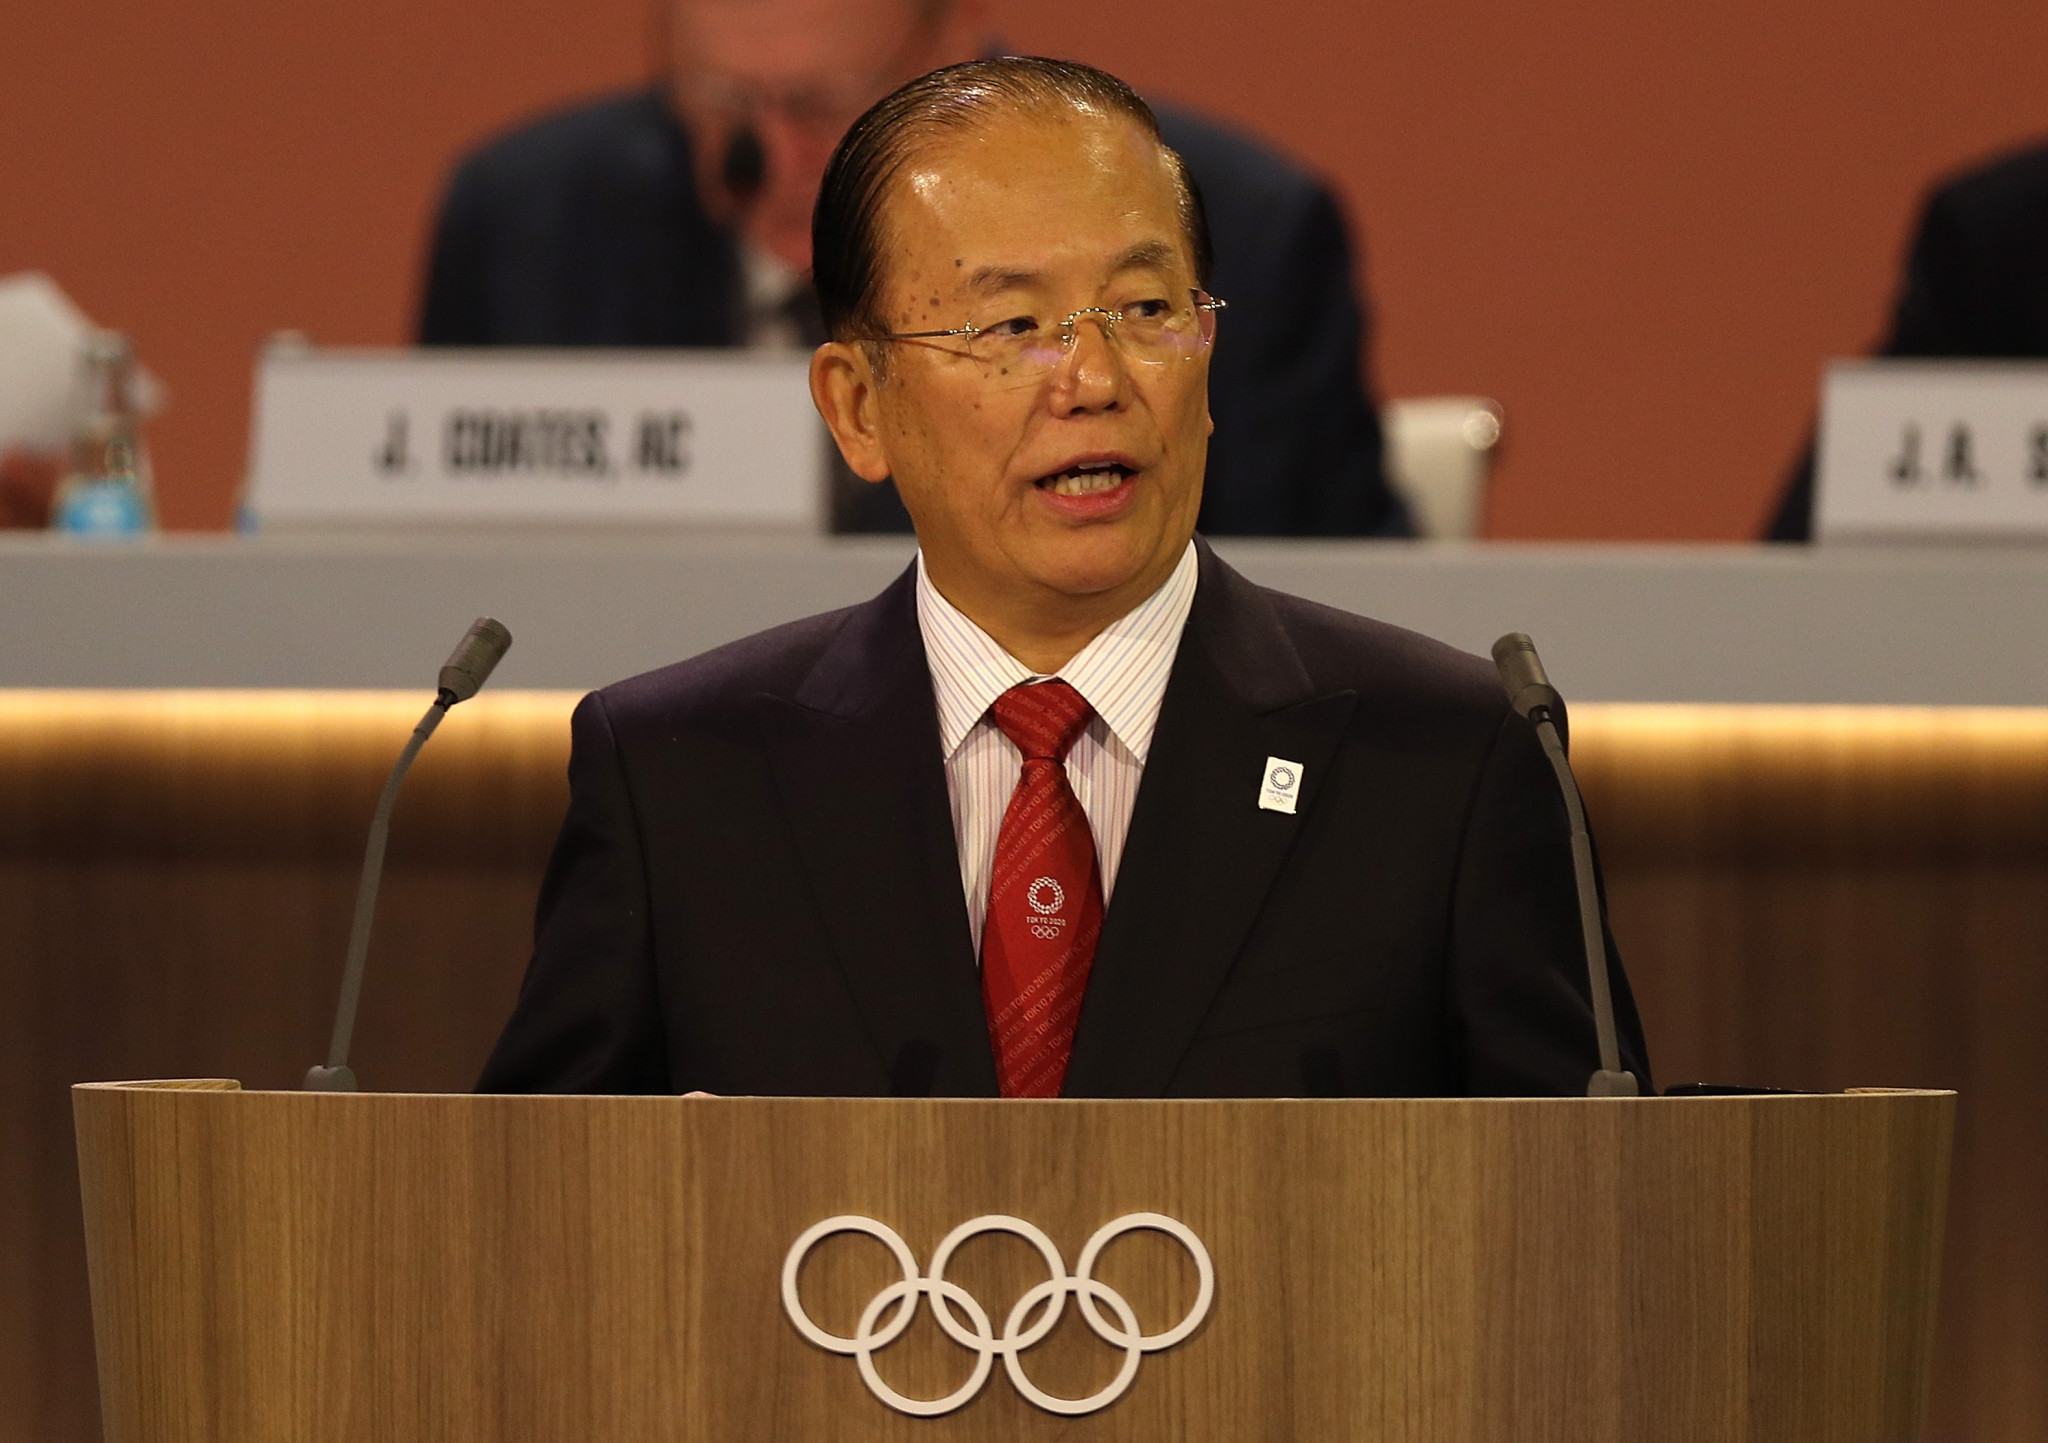 Tokyo 2020 chief executive Toshirō Mutō has warned the cost of rescheduling the Olympics and Paralympics will be